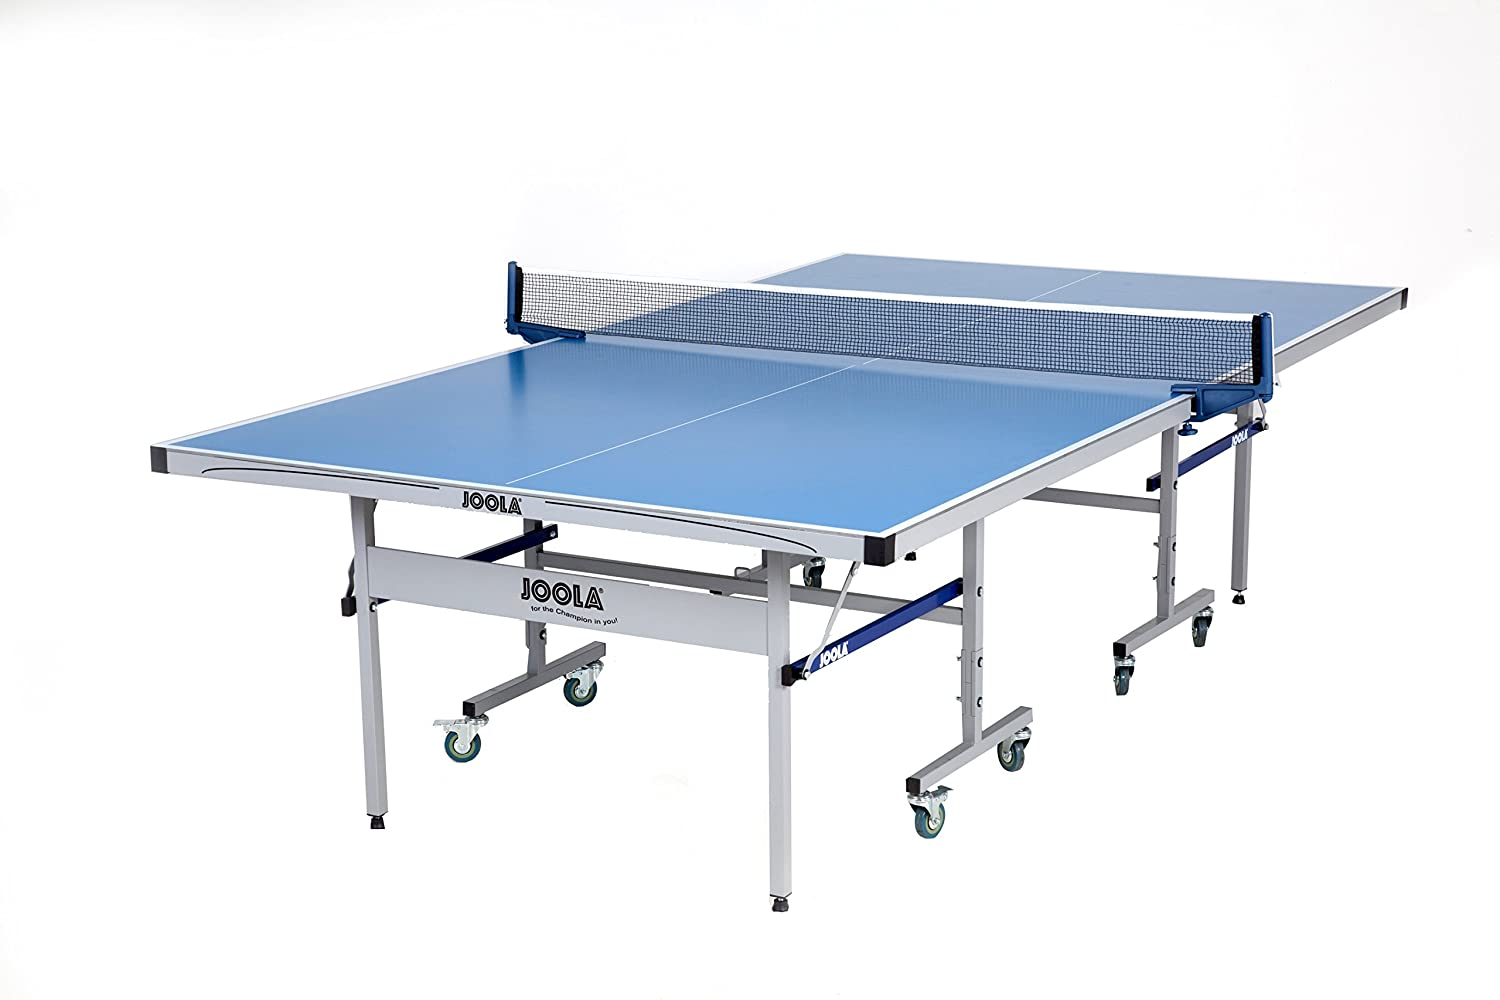 JOOLA NOVA DX Indoor/Outdoor Table Tennis Table